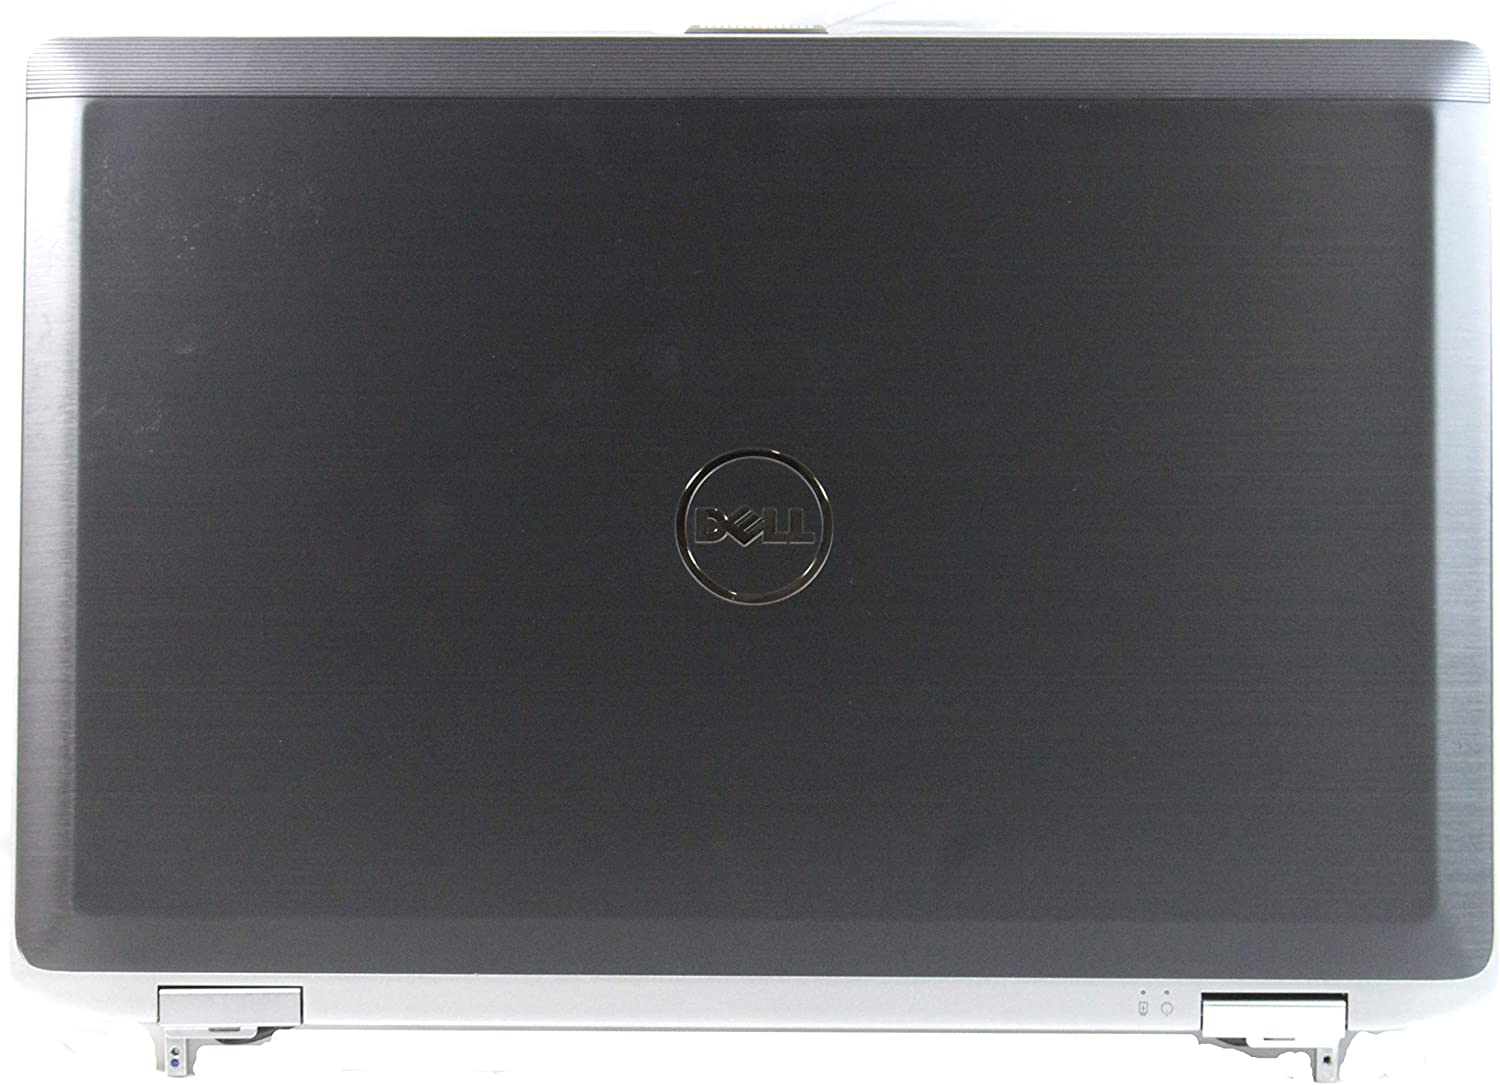 Dell LED YV679 Gray LCD Back Cover Latitude E6520 Top Lid